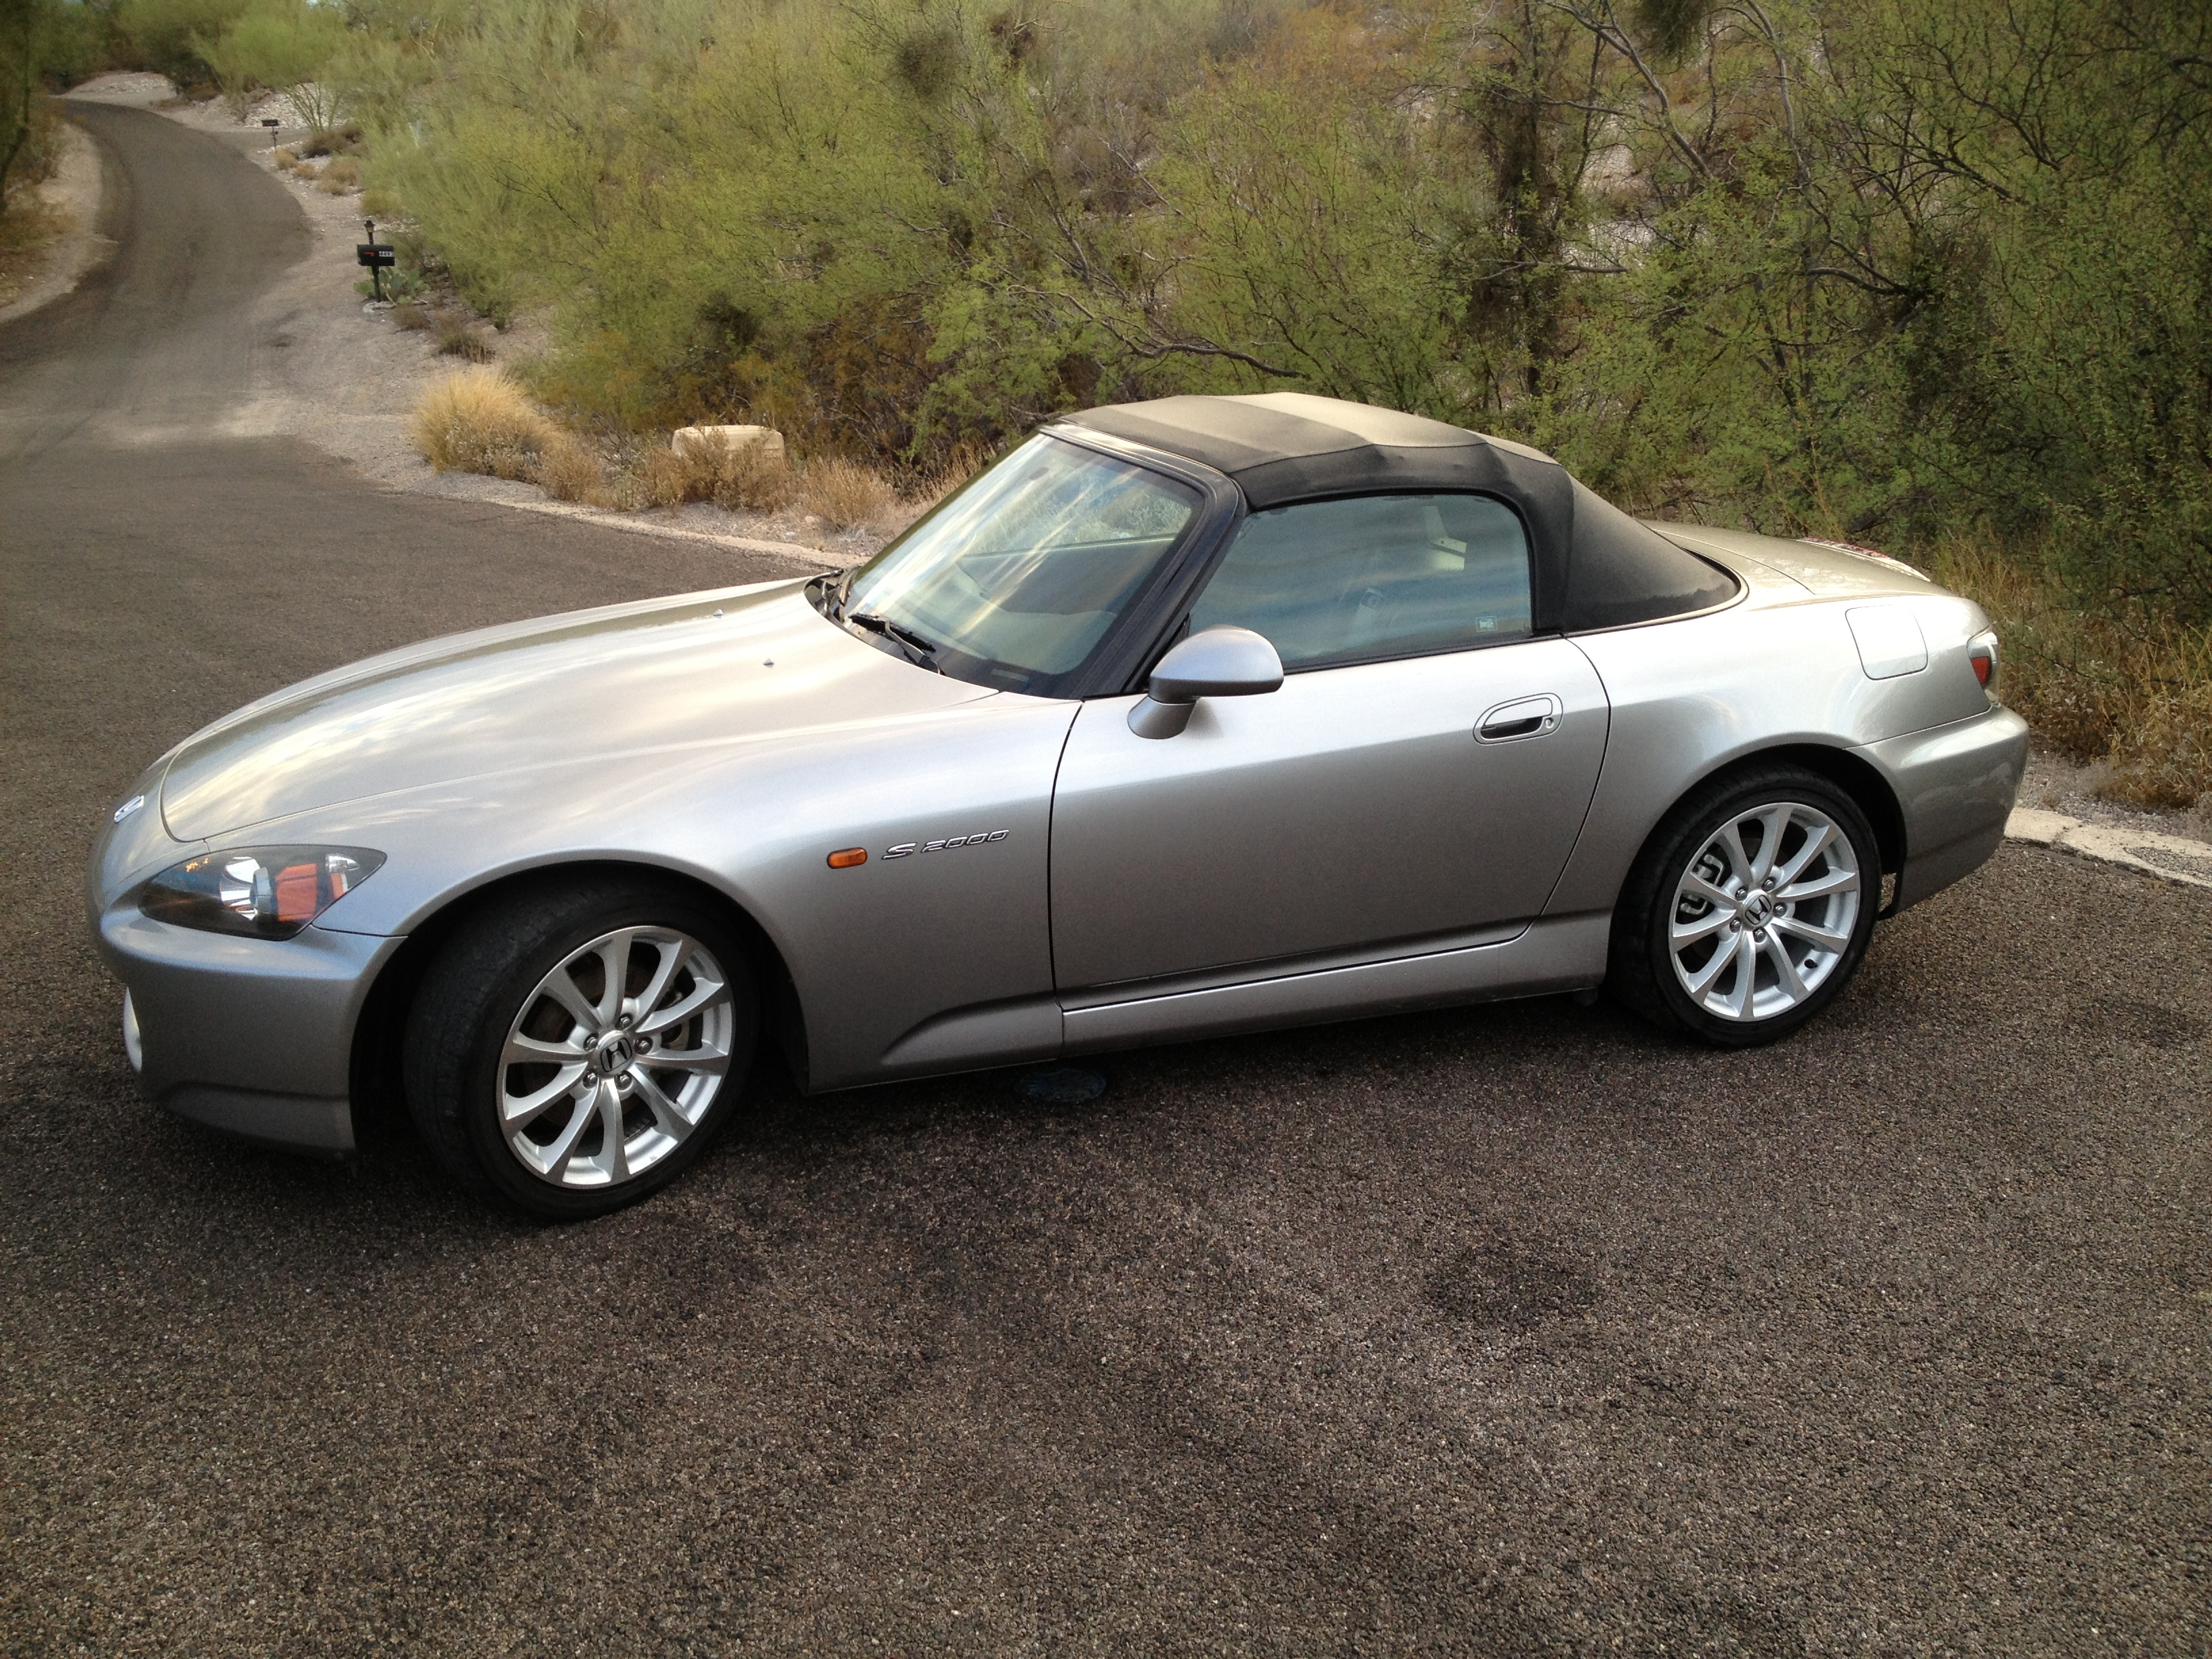 az 2007 s2000 ap2 35 000 miles 2nd owner car mint img 3269